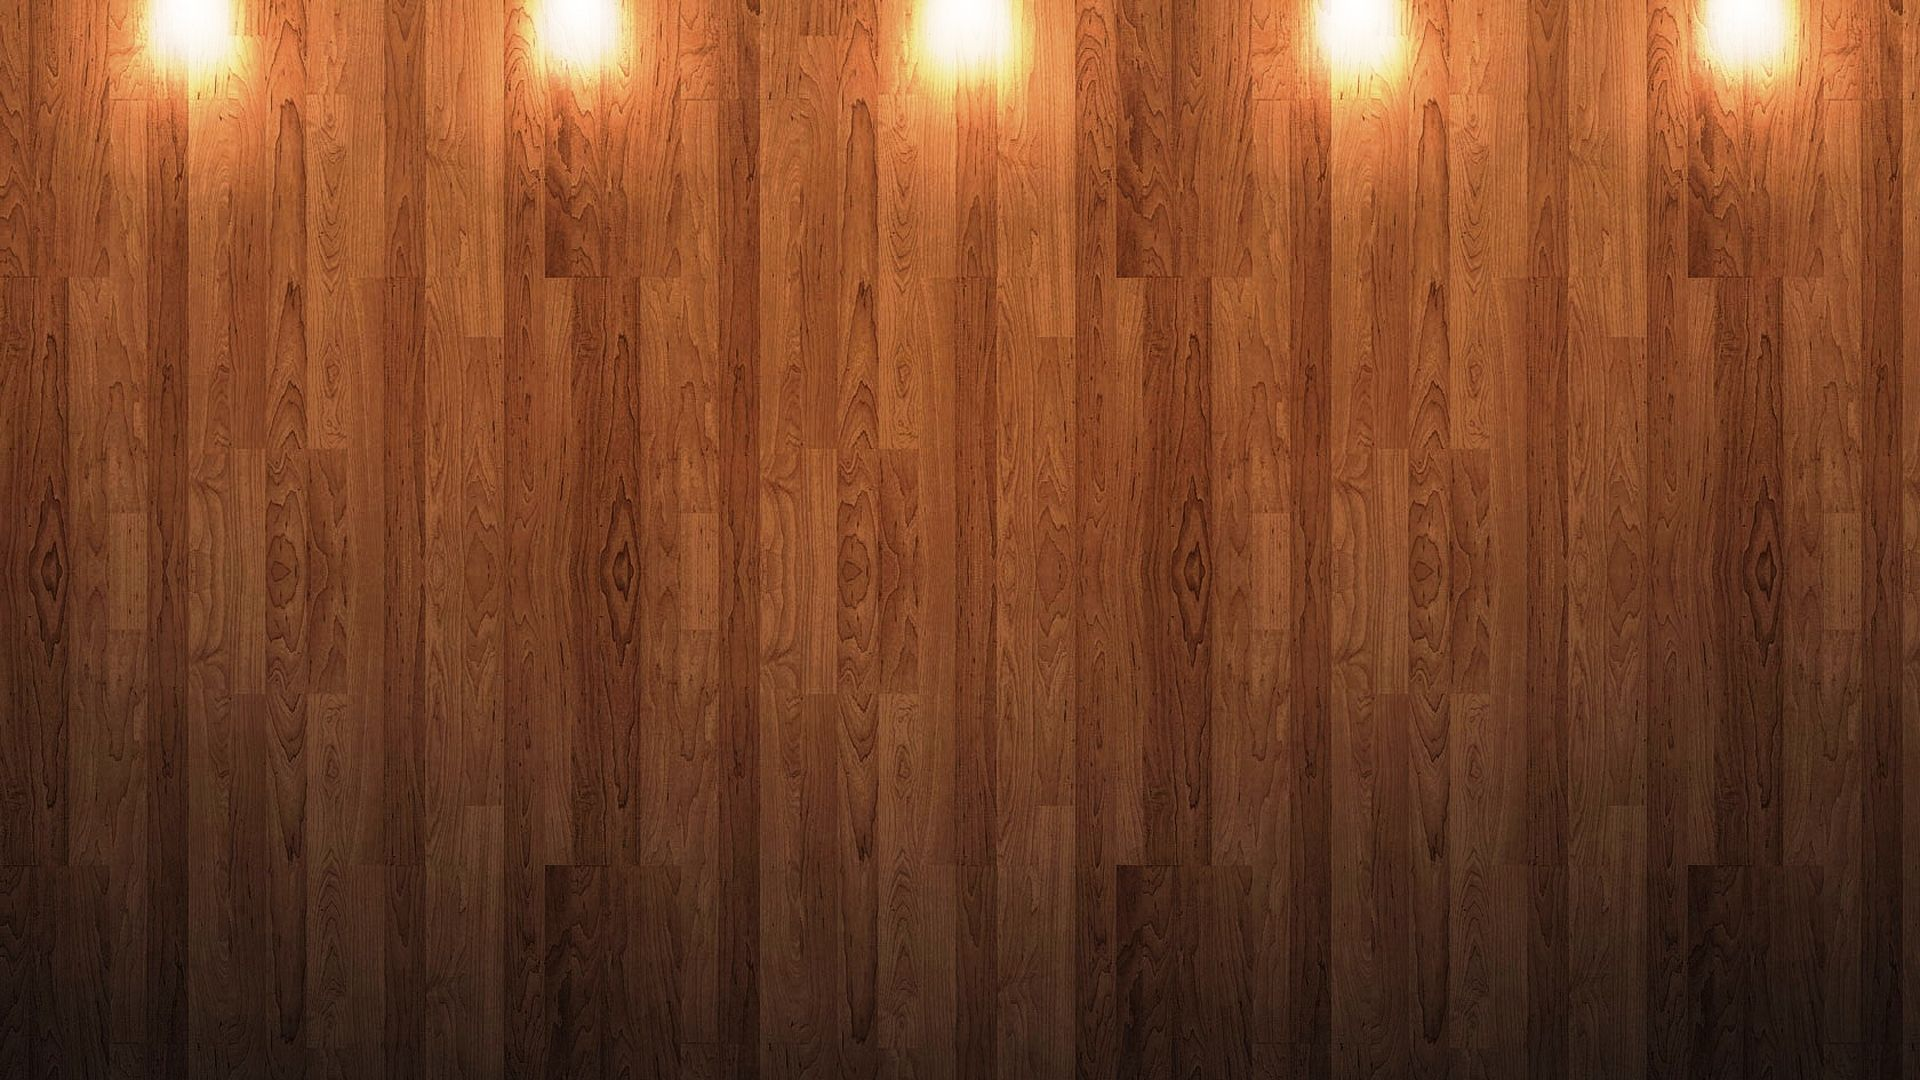 Wood Wallpaper - Wood Background Hd (# 134649) - Descargar fondo de pantalla HD